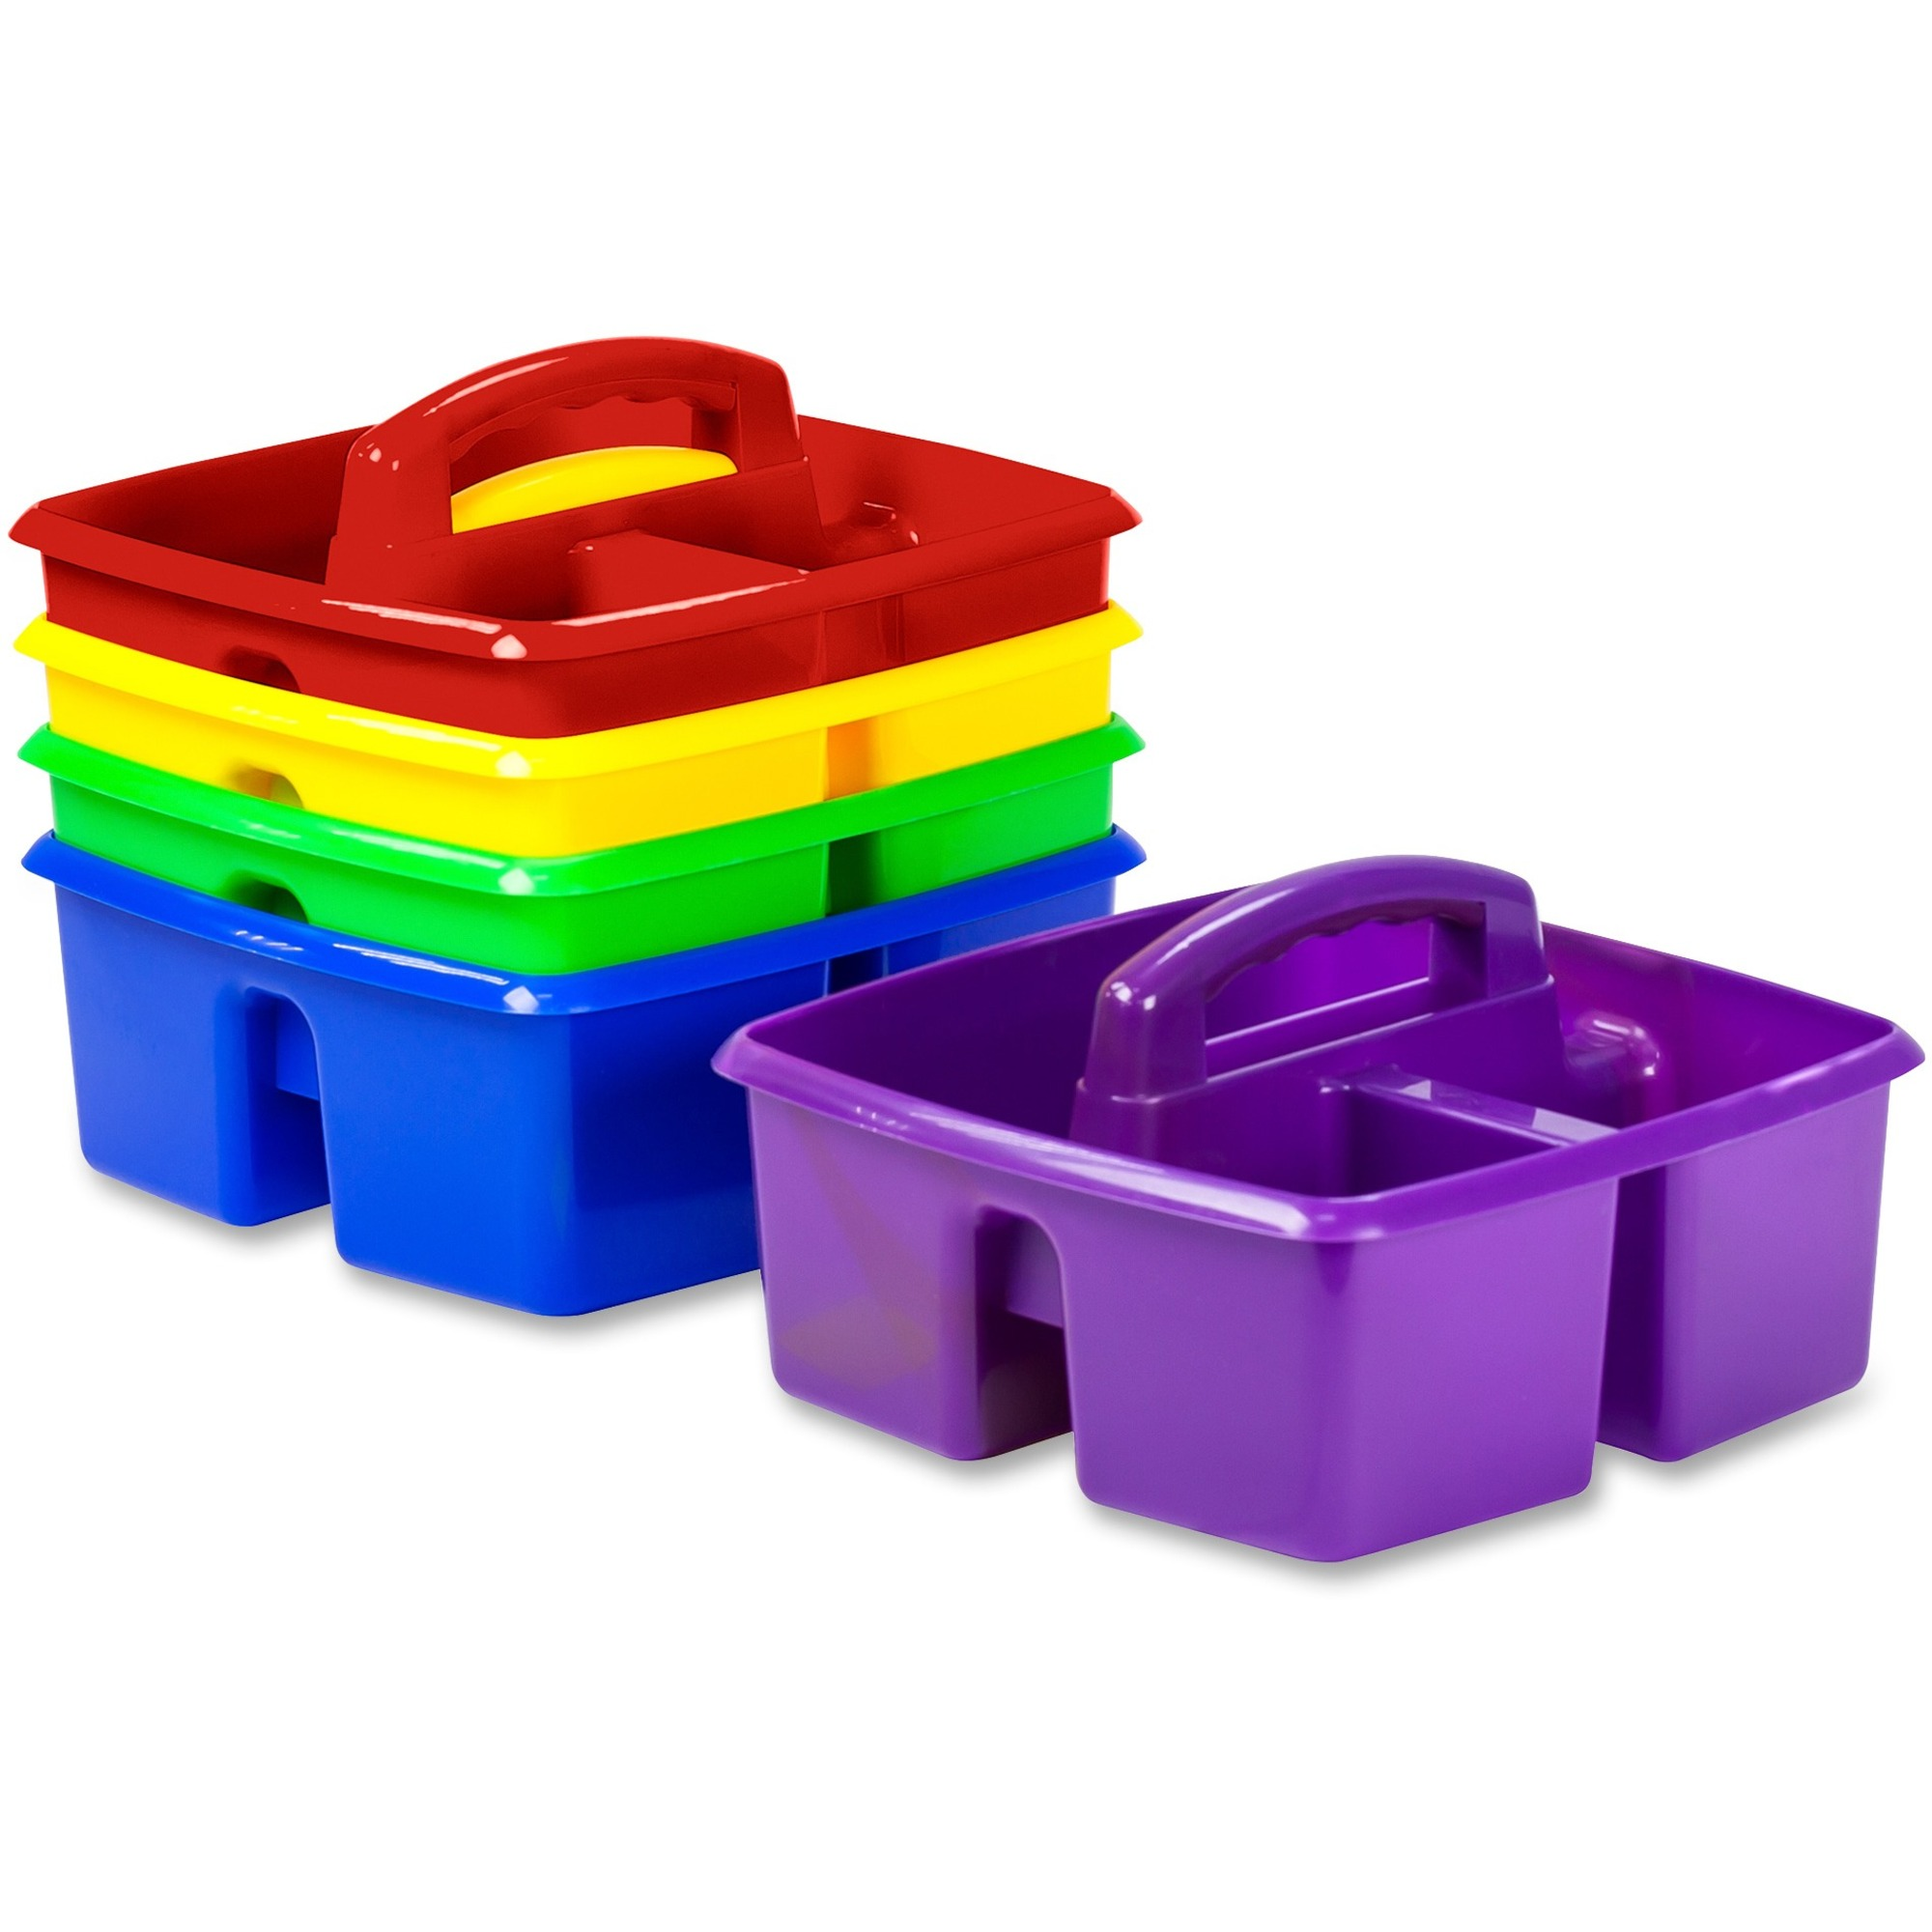 Ocean Stationery and Office Supplies :: Office Supplies :: Storage ...